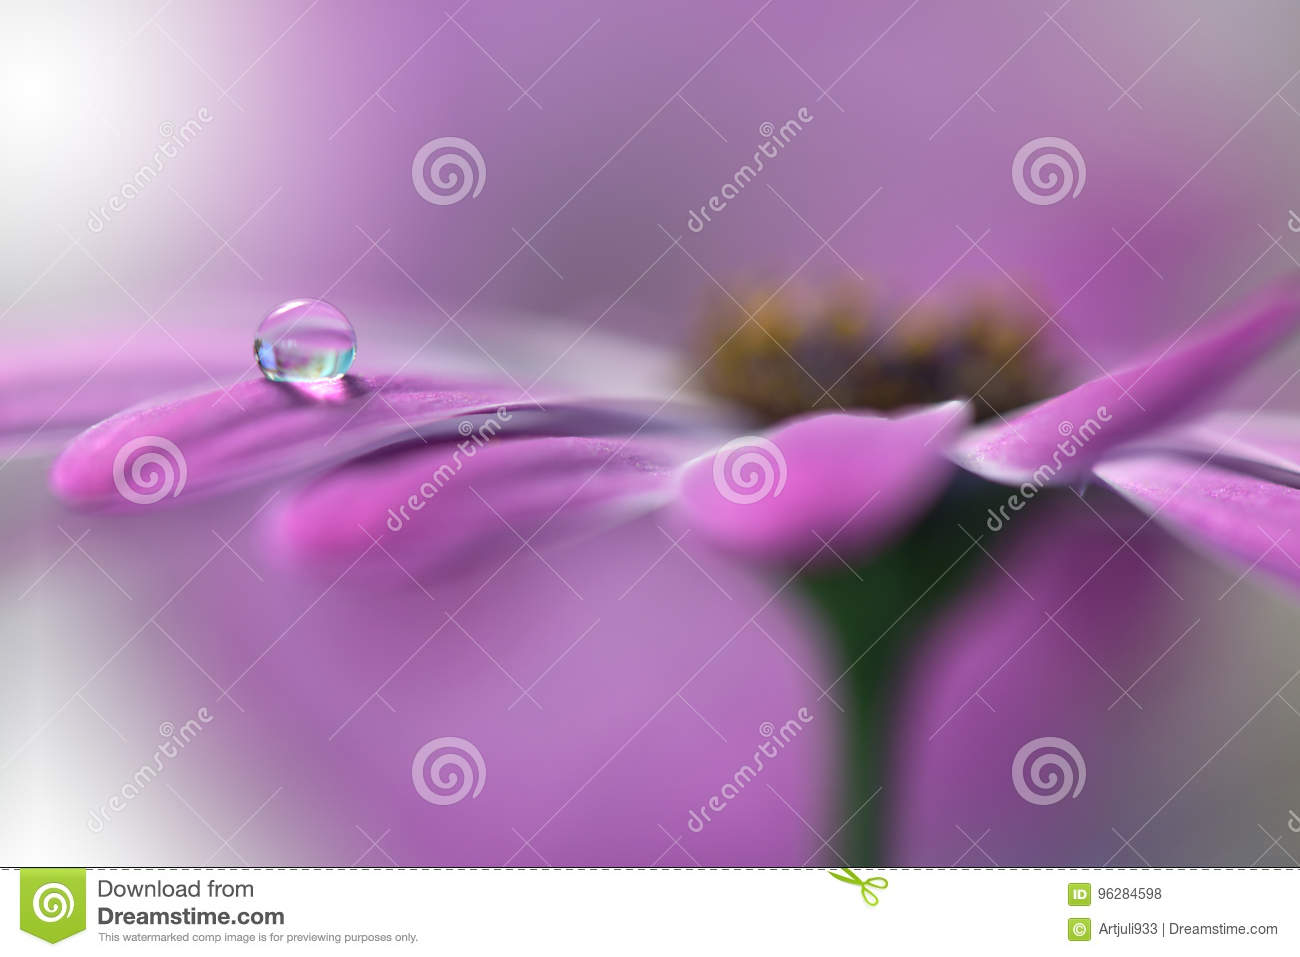 Tranquil abstract closeup art background.Macro photography,water drops.Beautiful Nature.Floral Art.Spring,pink,plant.Amazing.